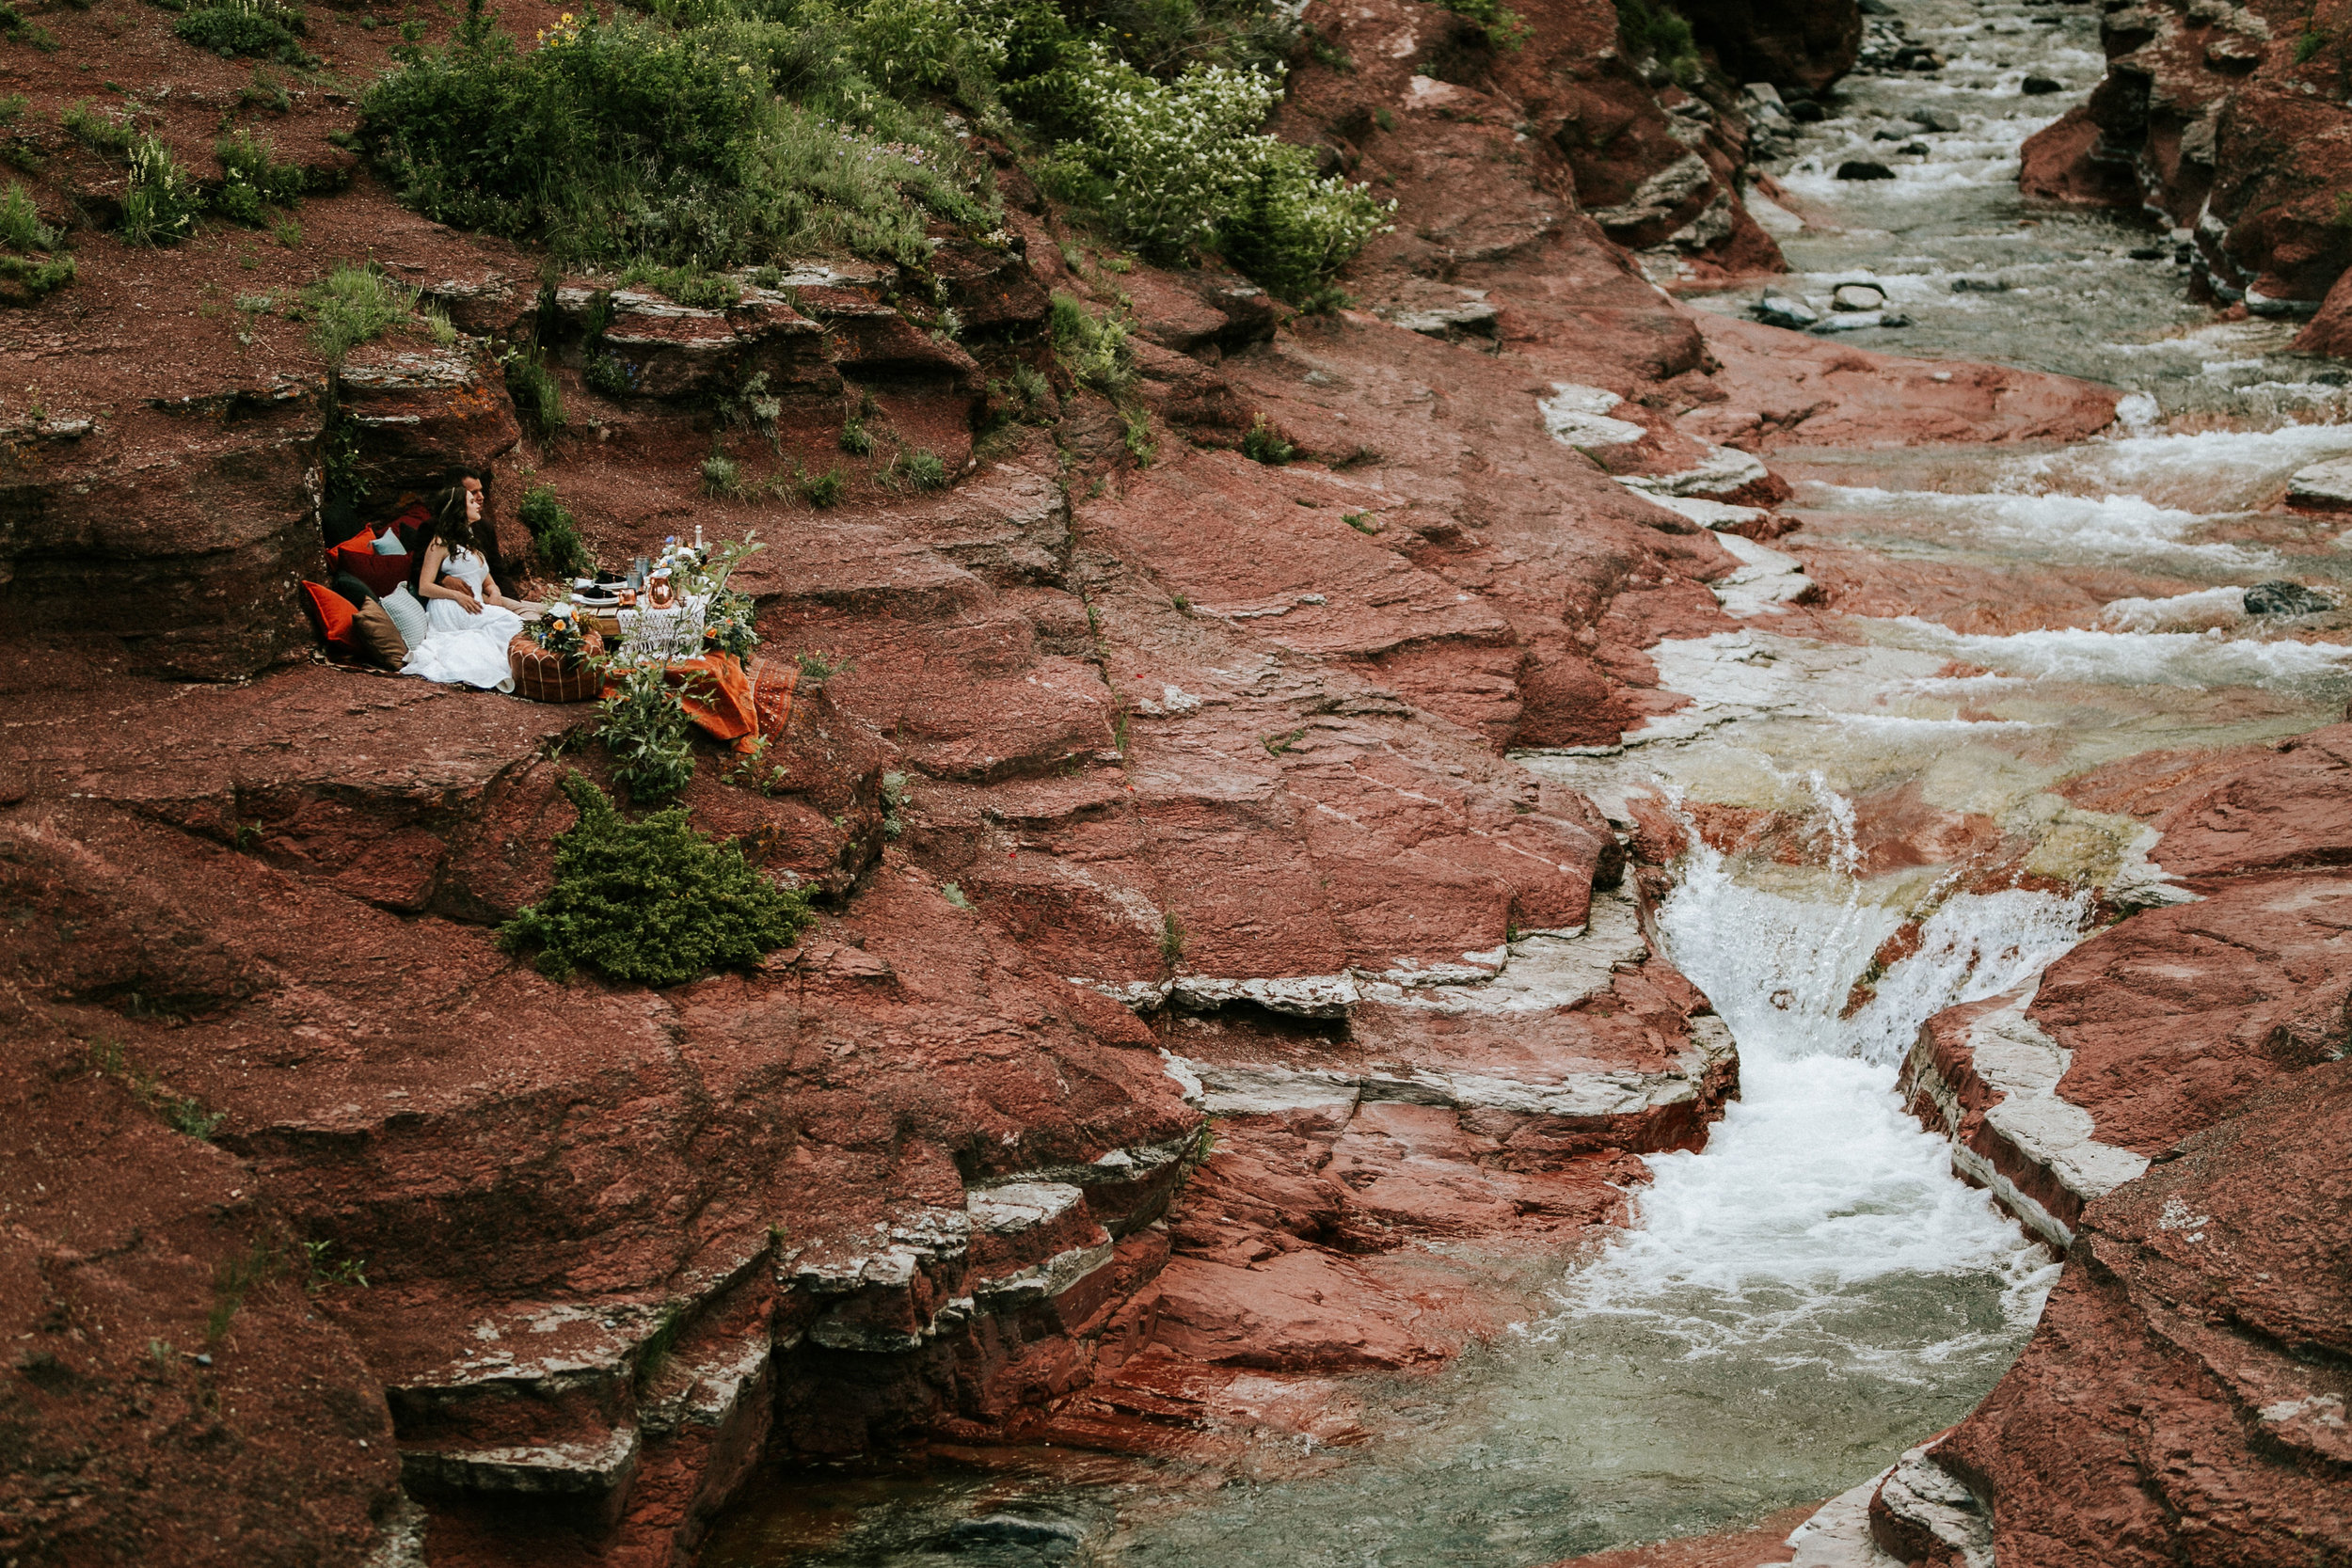 Red Rock Canyon Elopement // Bexley Design Co | Styled Shoot in Waterton Alberta